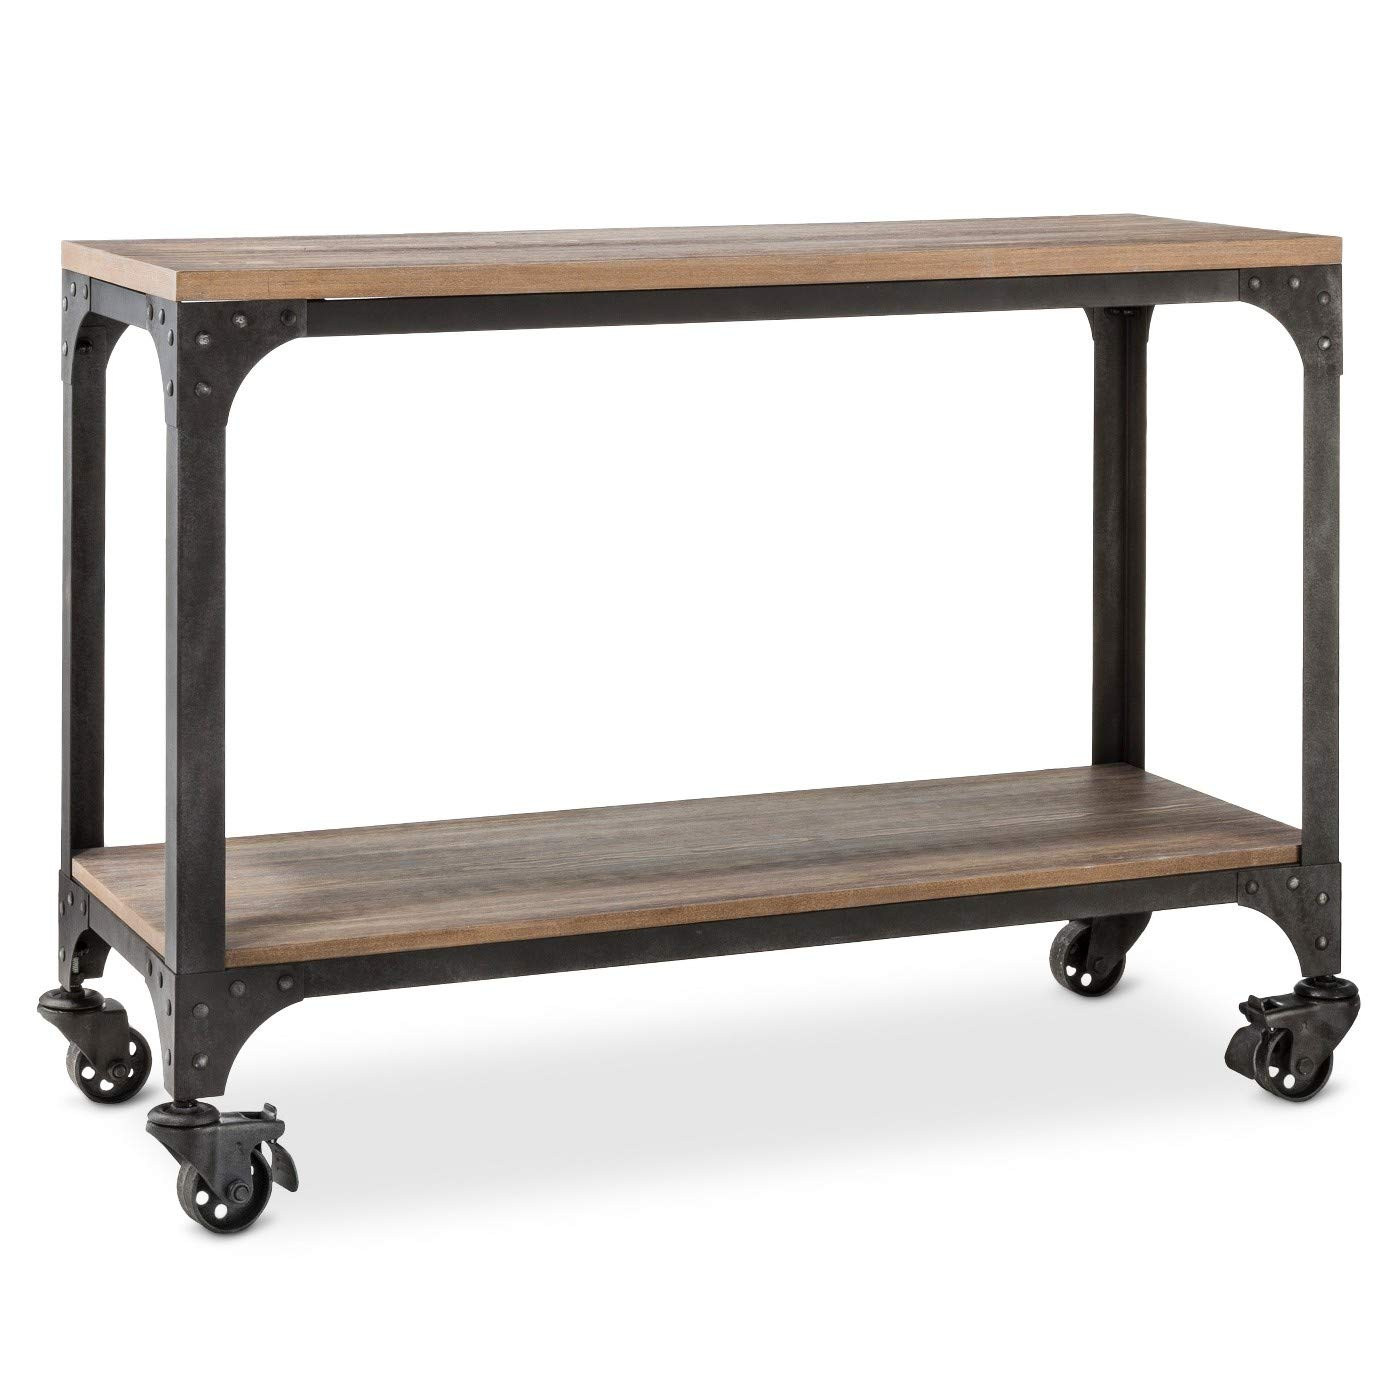 ecom franklin console table the industrial chic accent kitchen dining metal top side large circular tablecloths look tables torch lamp umbrella stand square coffee with storage